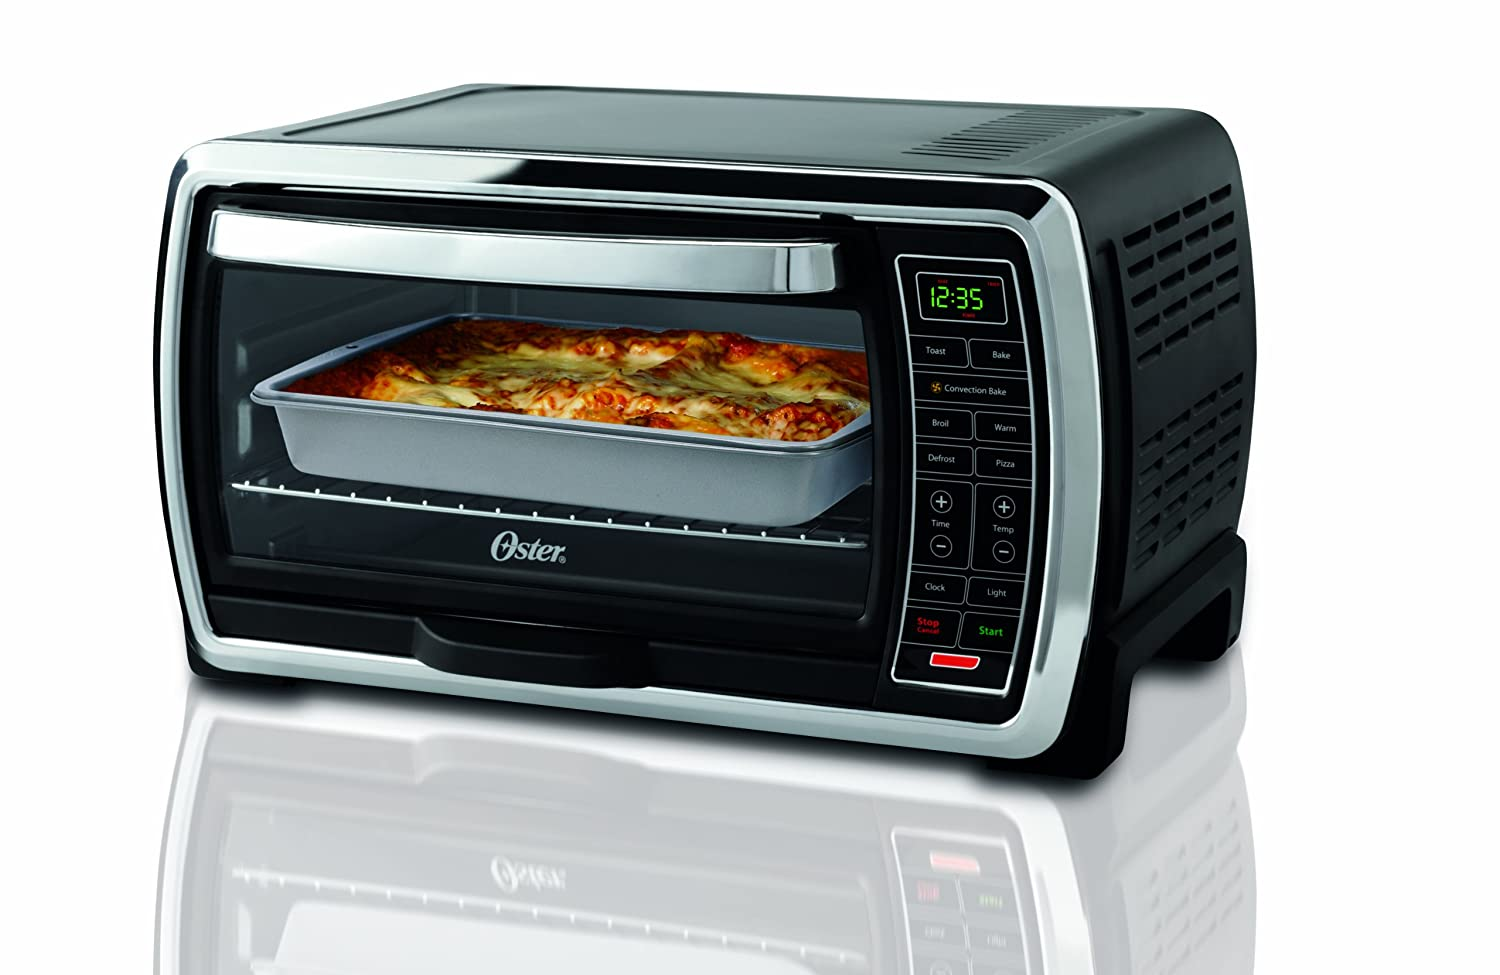 Oster Large Countertop Convection Oven Black : Oster Lg Capacity Countertop 6-Slice Digital Convection Toaster Oven ...